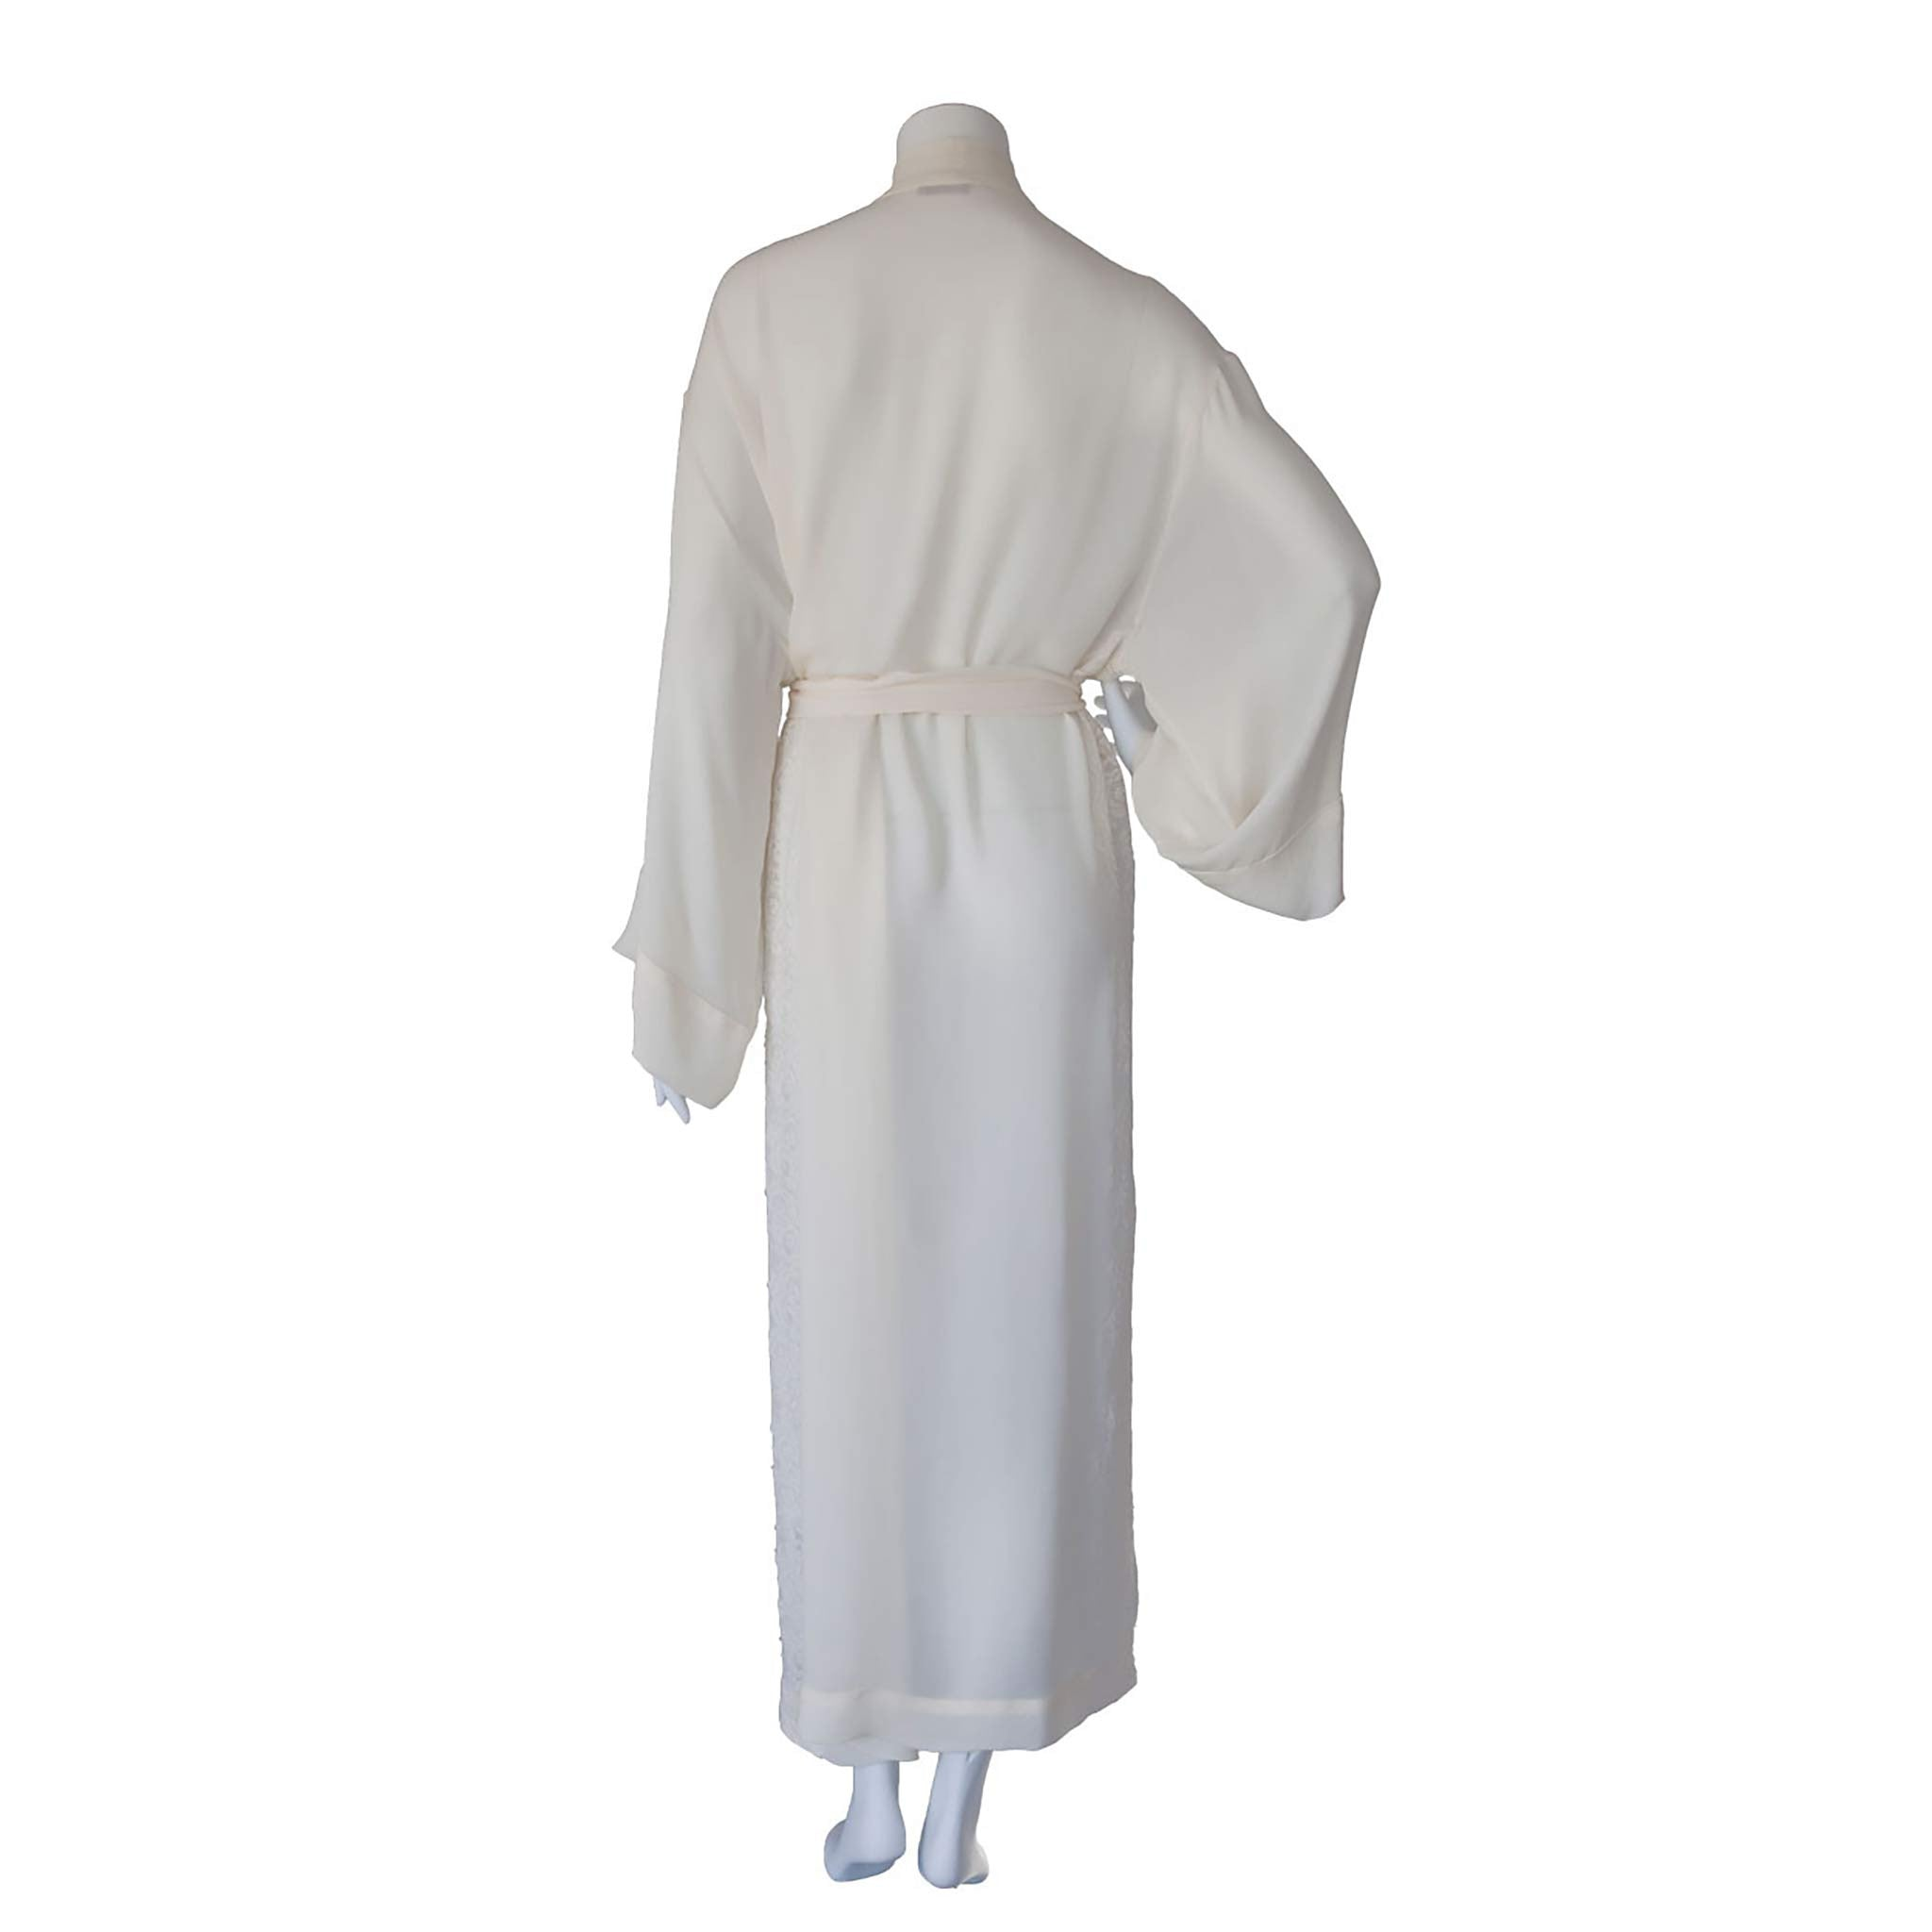 Asteria Kimono Robe in Pearl Silk Double Georgette